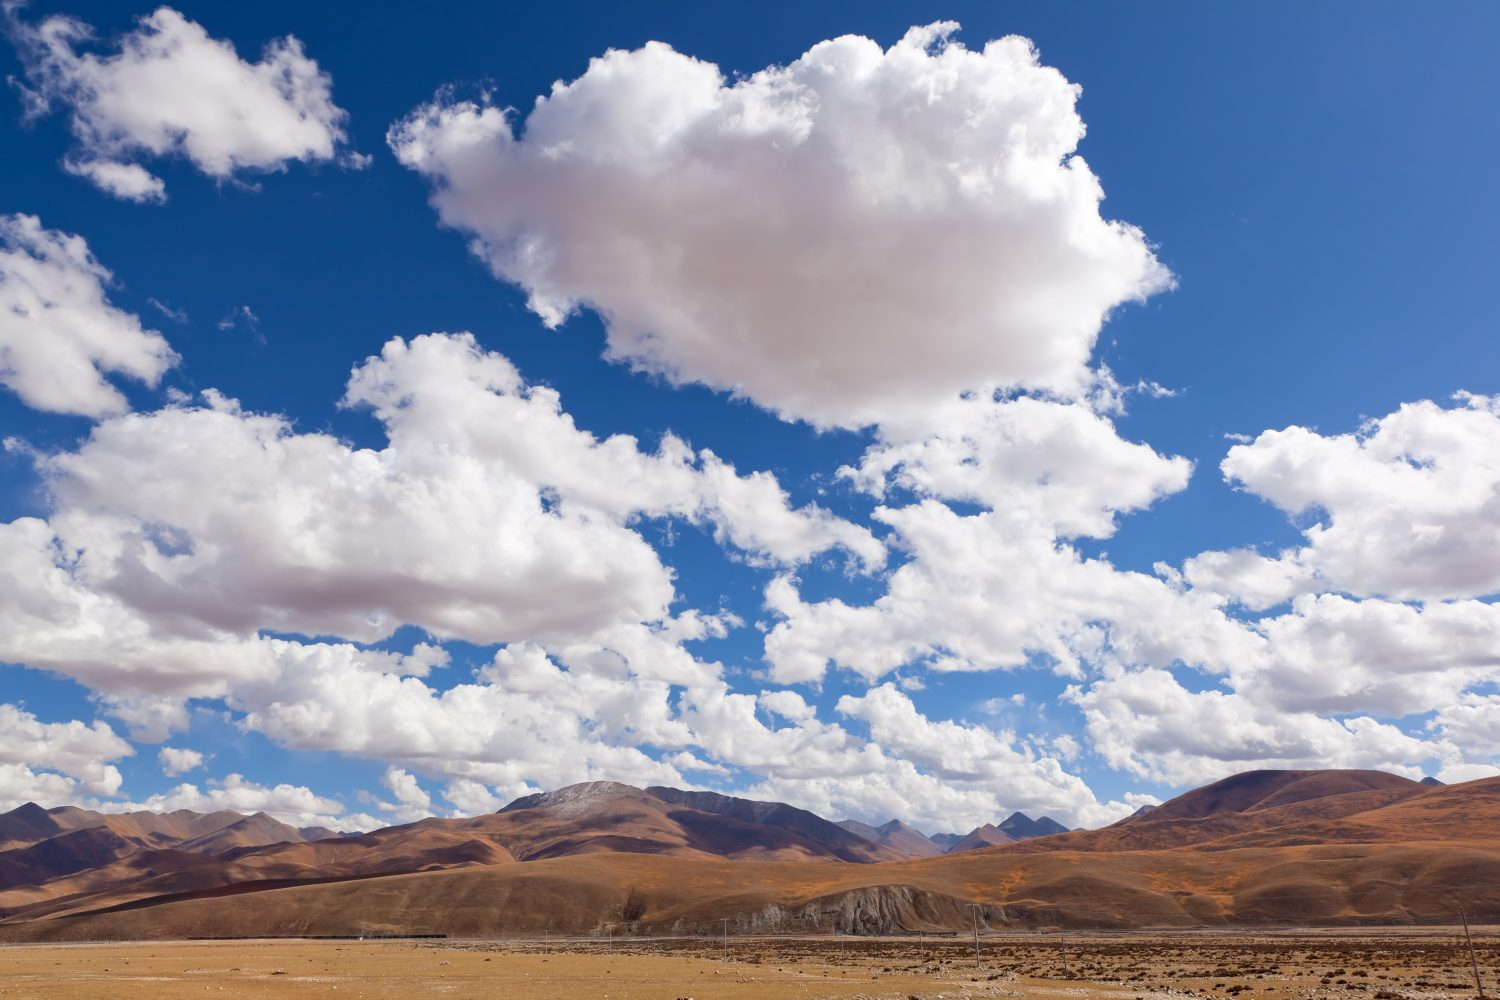 Tanggula Mountains - visit Tibet